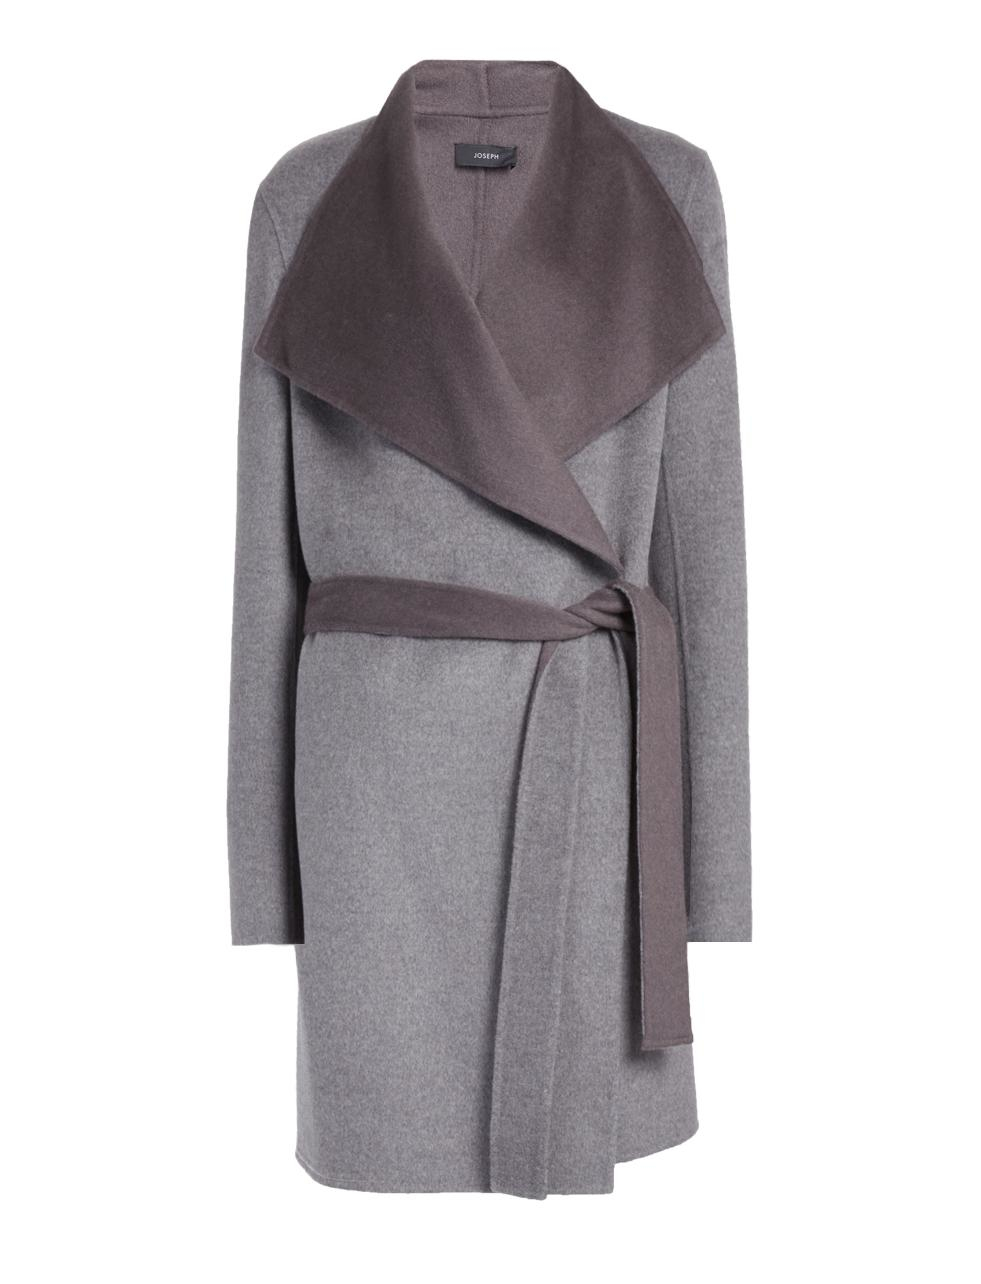 joseph-smoke-combo-double-cashmere-lisa-long-coat-gray-product-0-119625139-normal.jpg